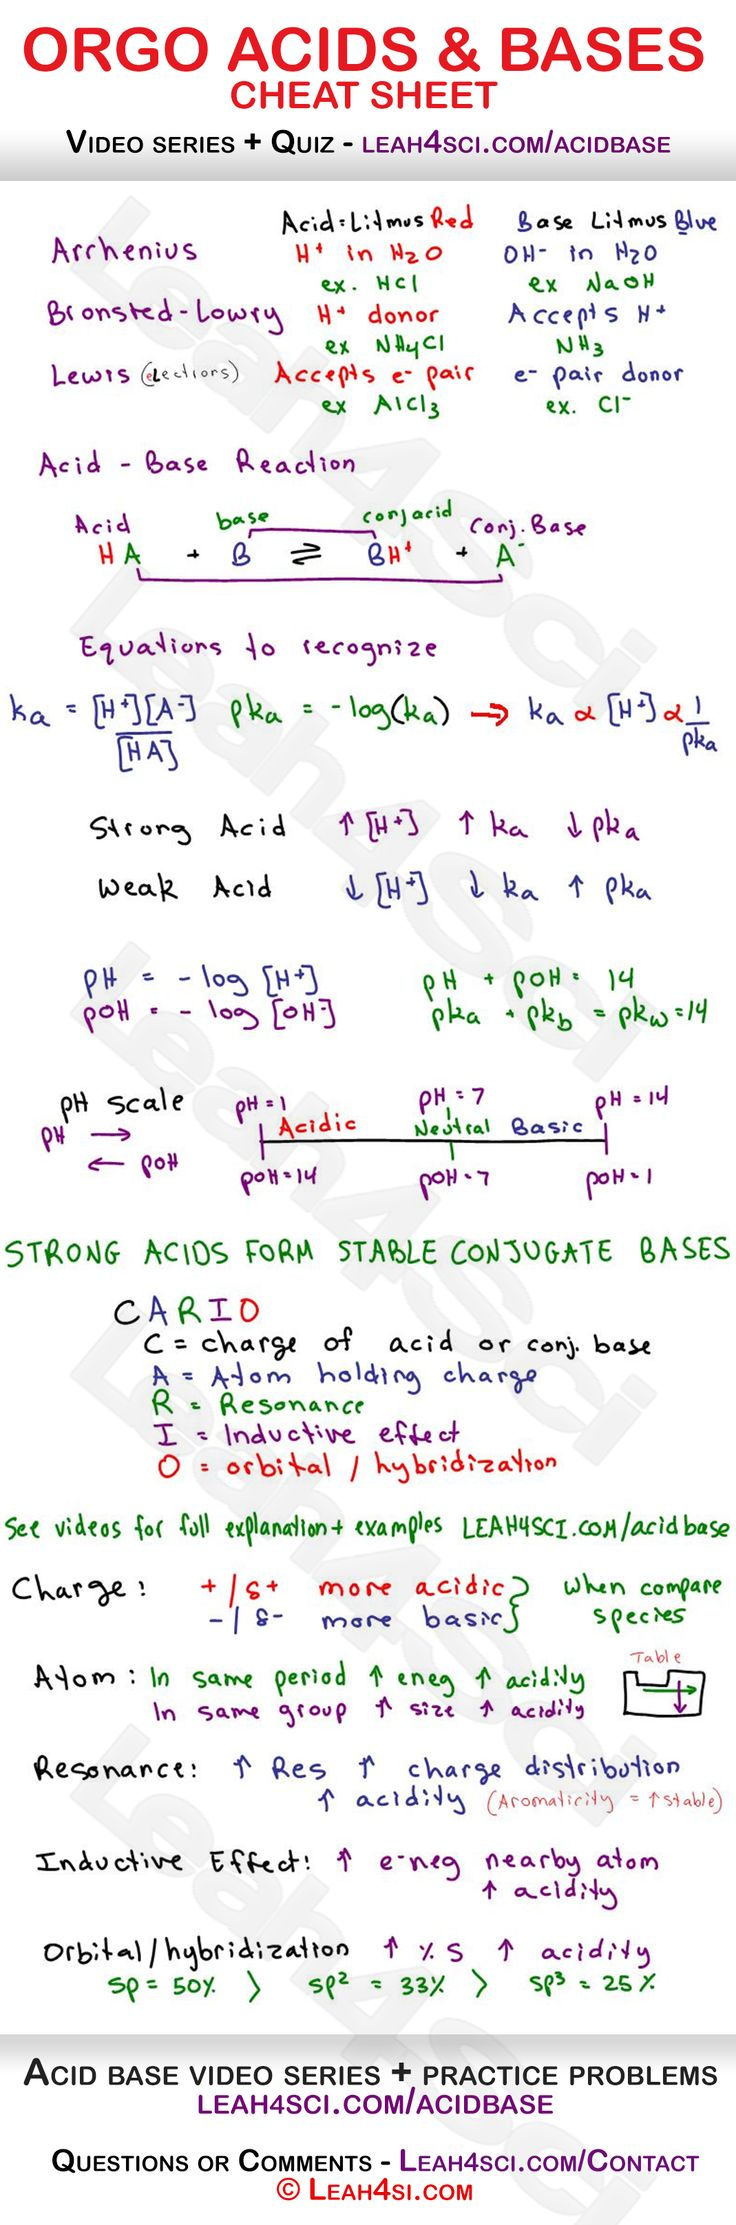 Acids and Bases in Organic Chemistry - Arrhenius, Bronsted-Lowry and Lewis acids…